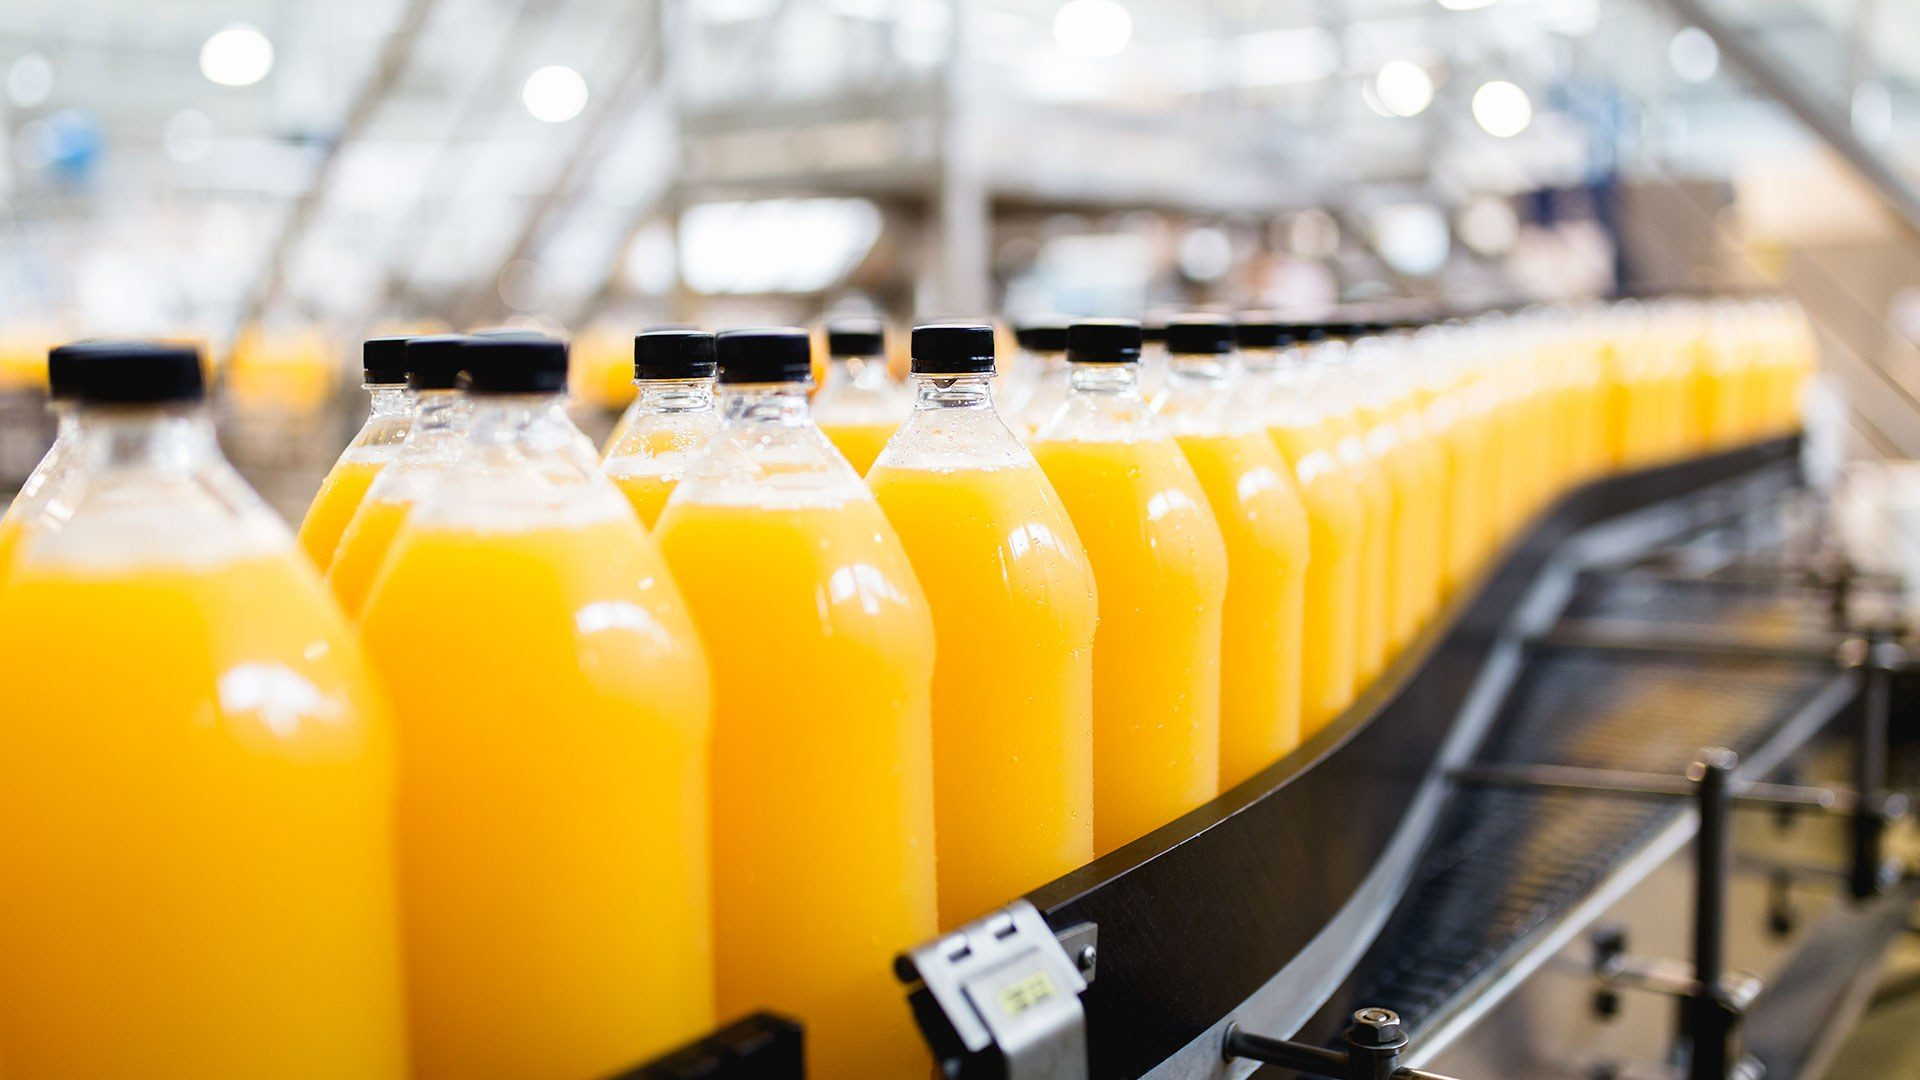 A photo of fruit juice being bottled